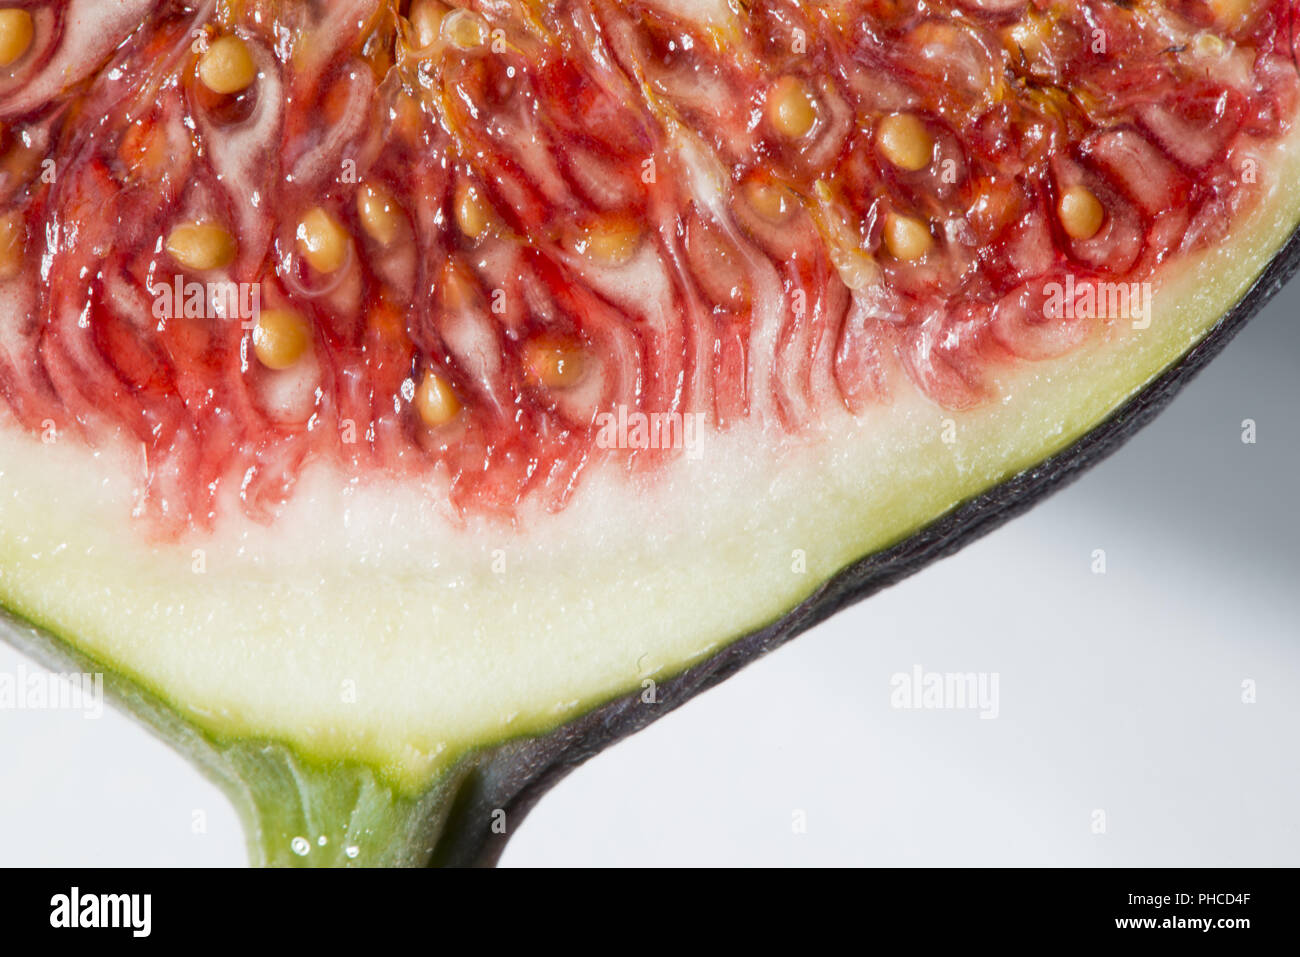 Figs in Close-Up - Stock Image